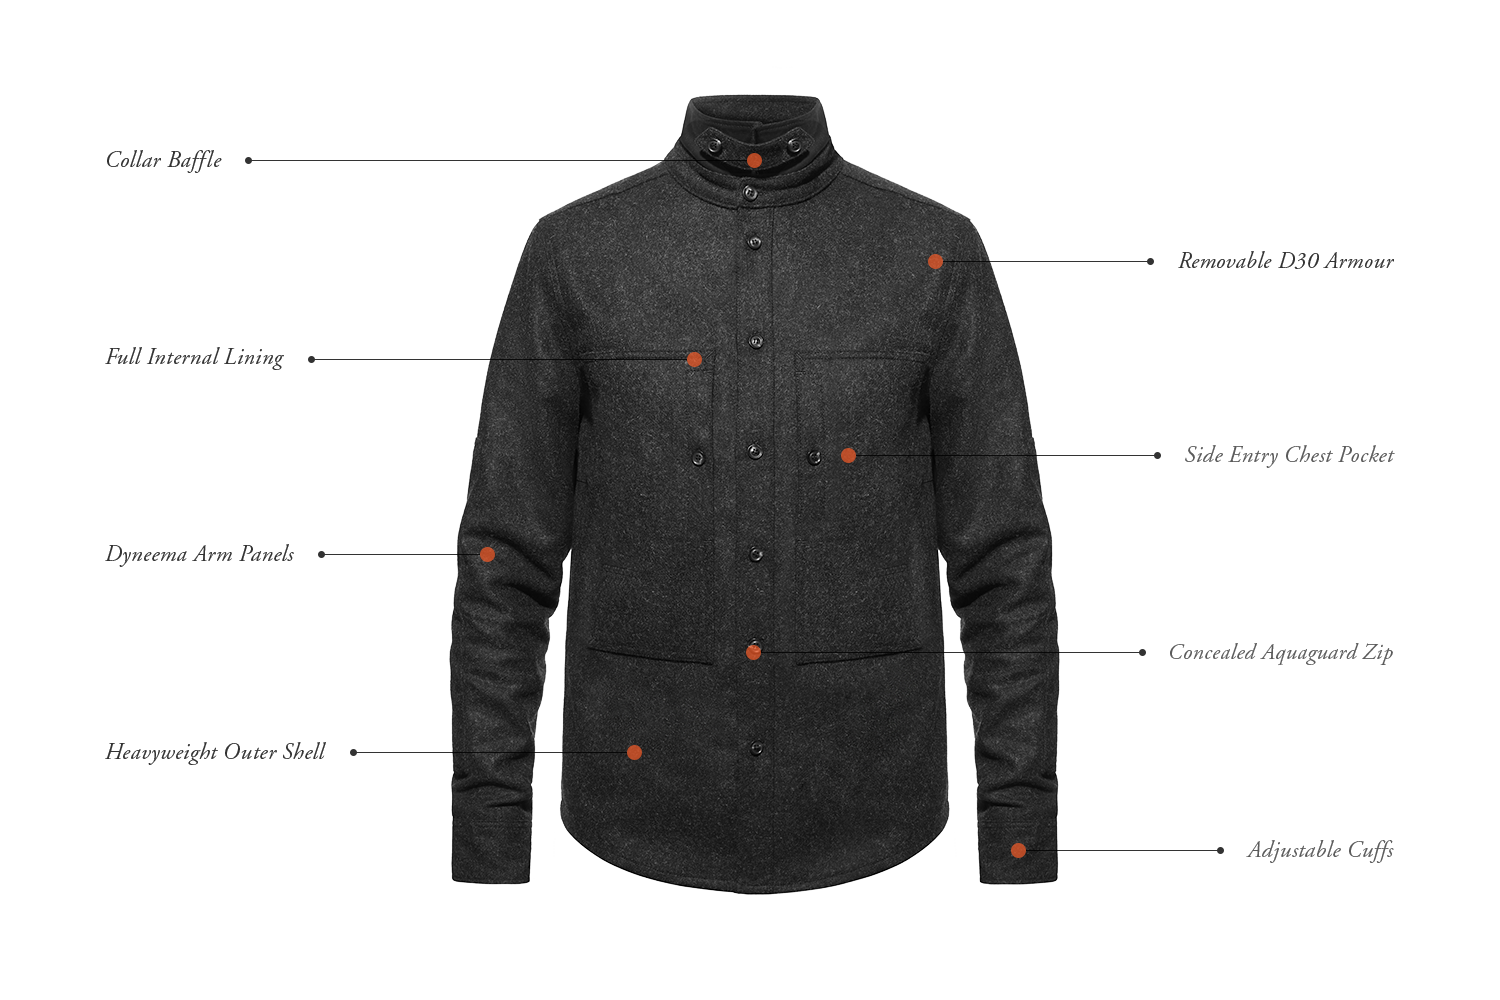 The functional details of the Eversholt Motorcycle Jacket.